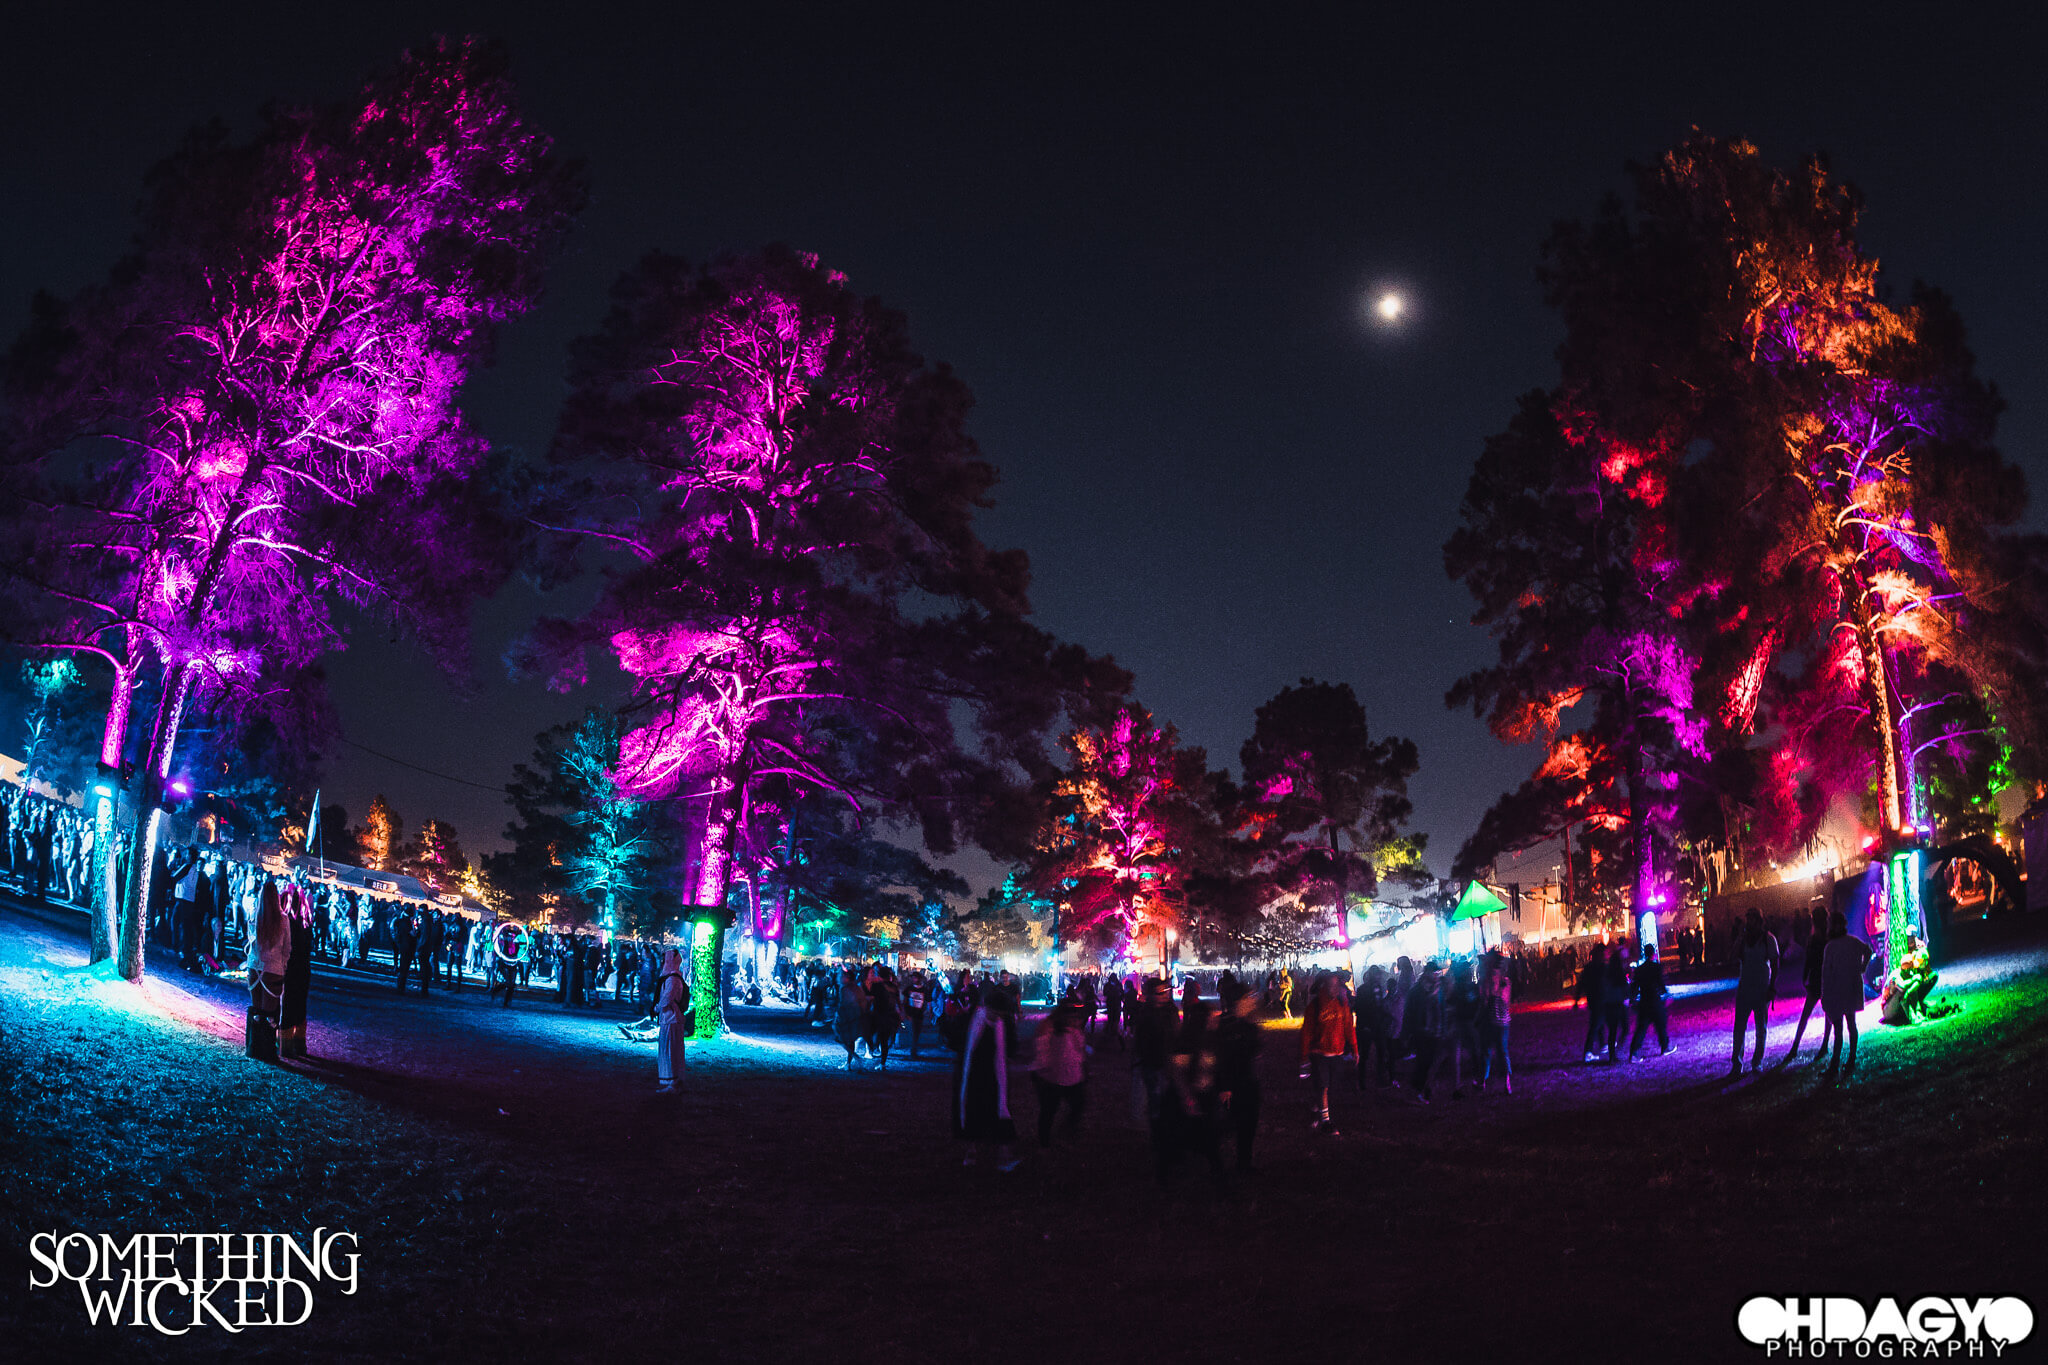 festival grounds lit up at night